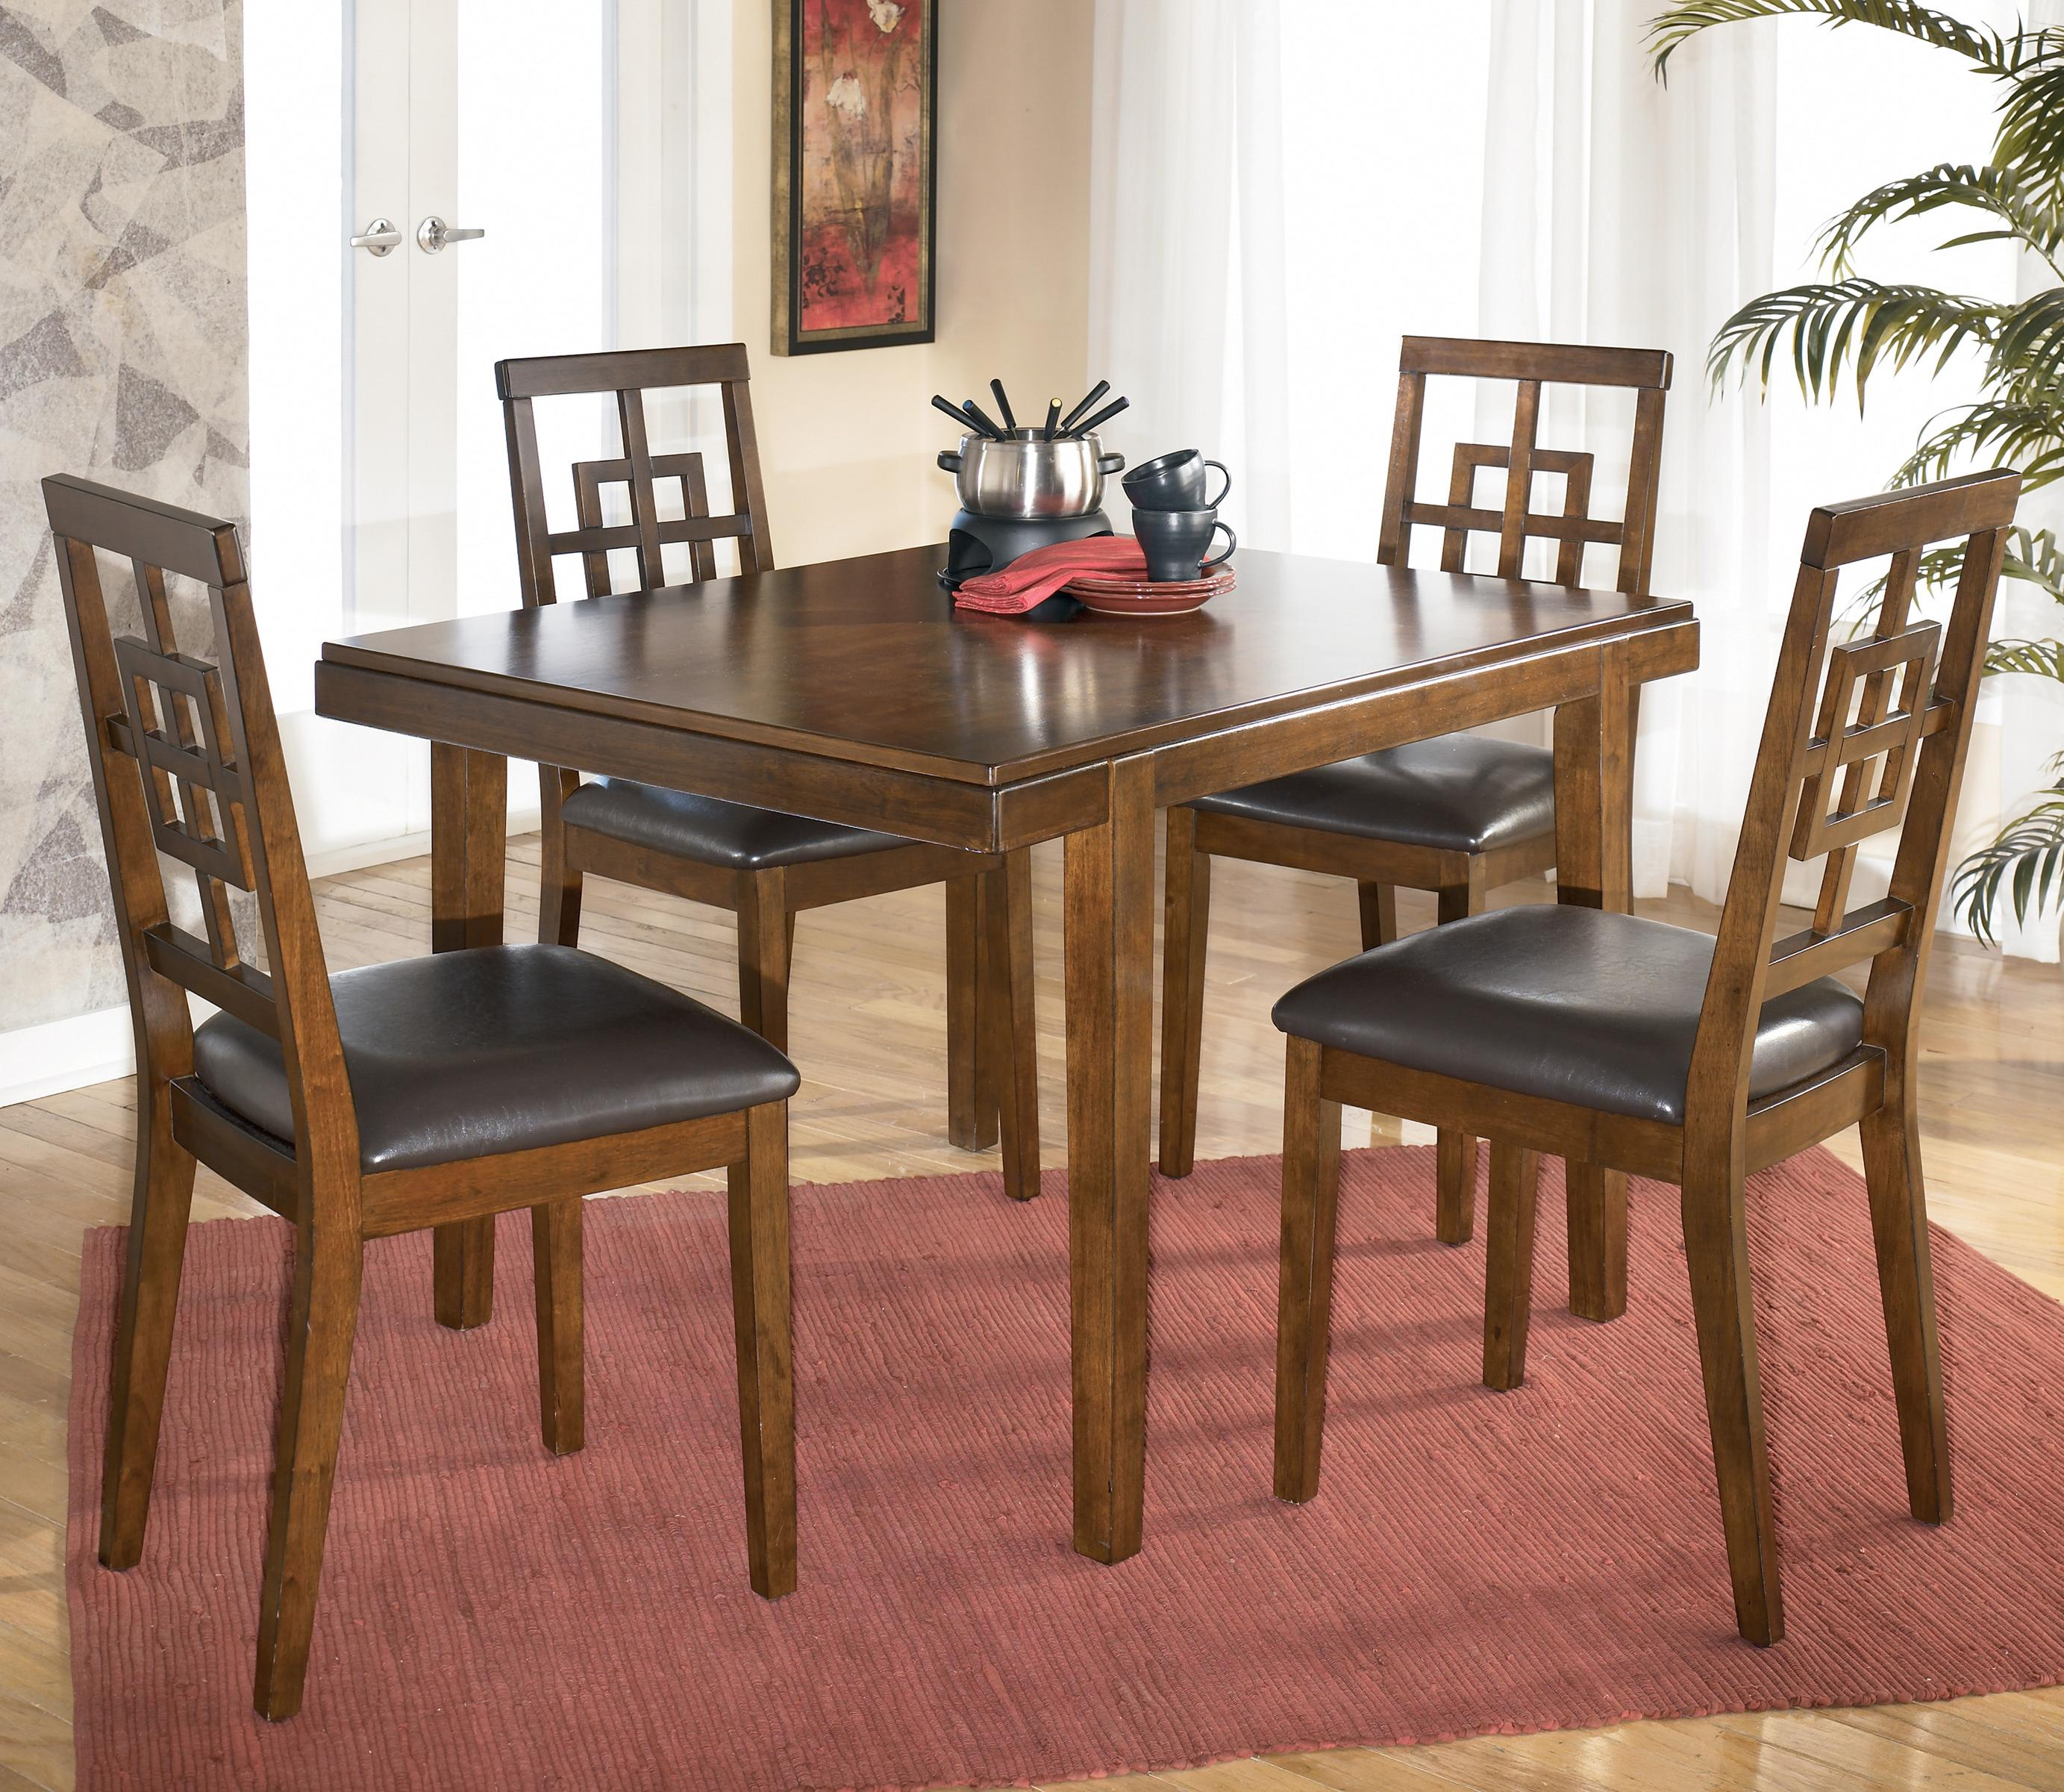 Signature Design by Ashley Cimeran Rectangular Table w/ 4 Side Chairs - Item Number: D295-225